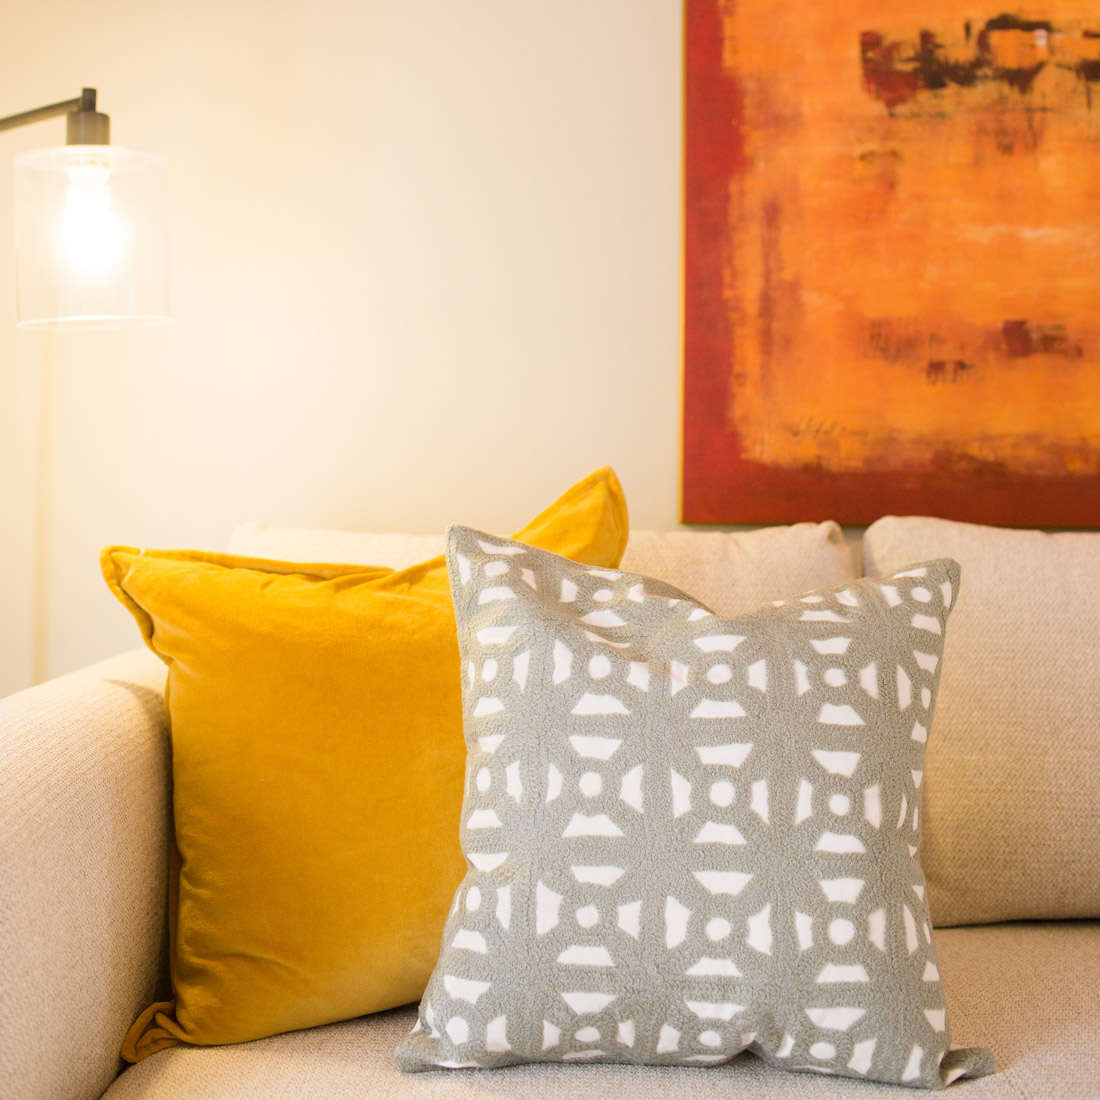 Pillow decor detail with yellow velvet pillow and grey crewel in contemporary geometric pattern on a neutral sofa bed and bright artwork design by sara bates interior design